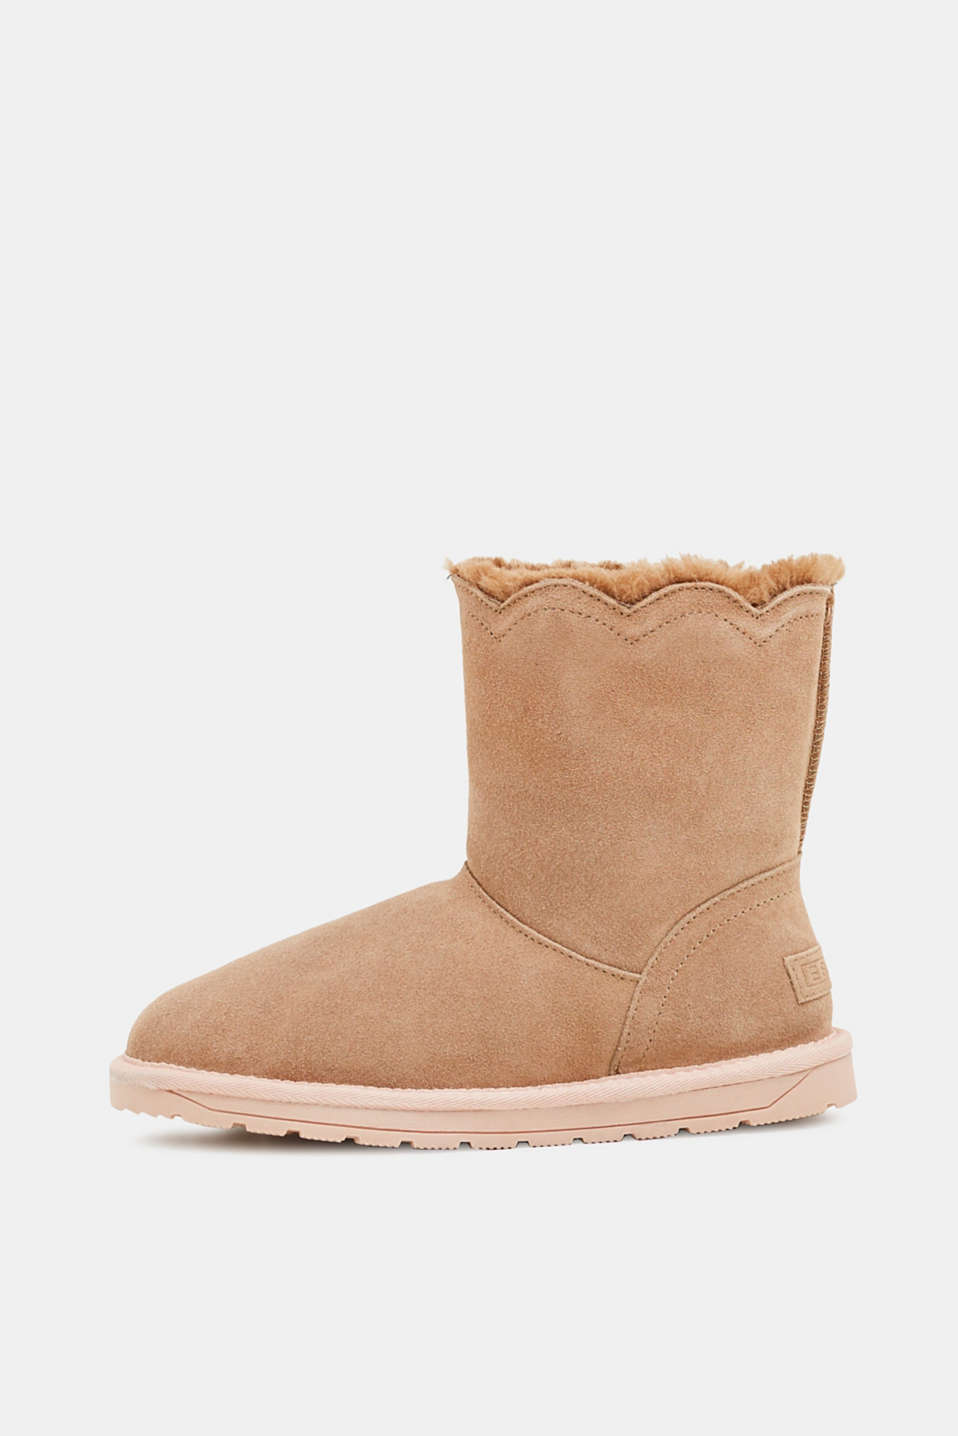 Esprit - Winter leather boots with faux fur lining